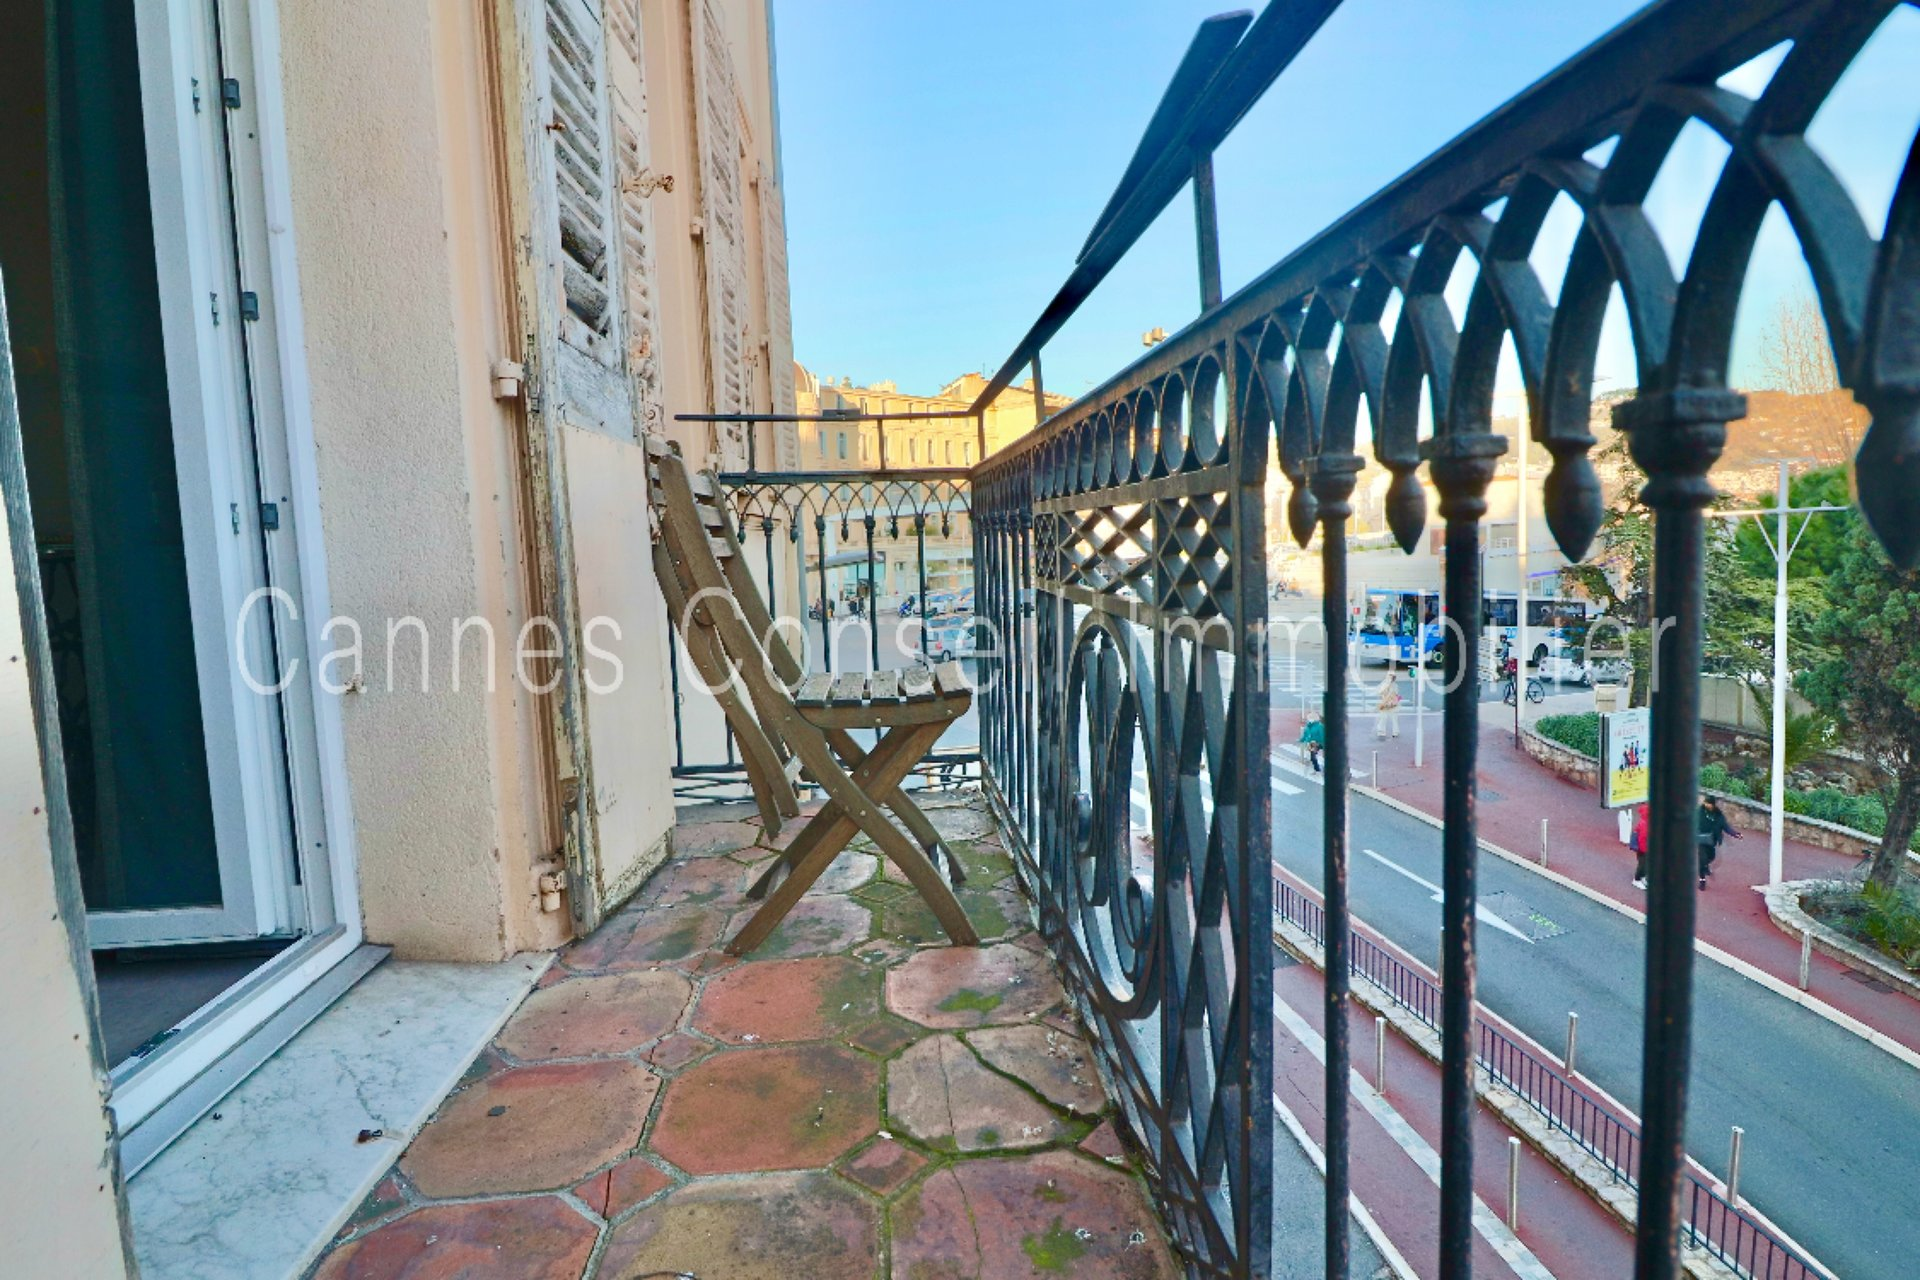 Cannes Centre - 2P Balcon